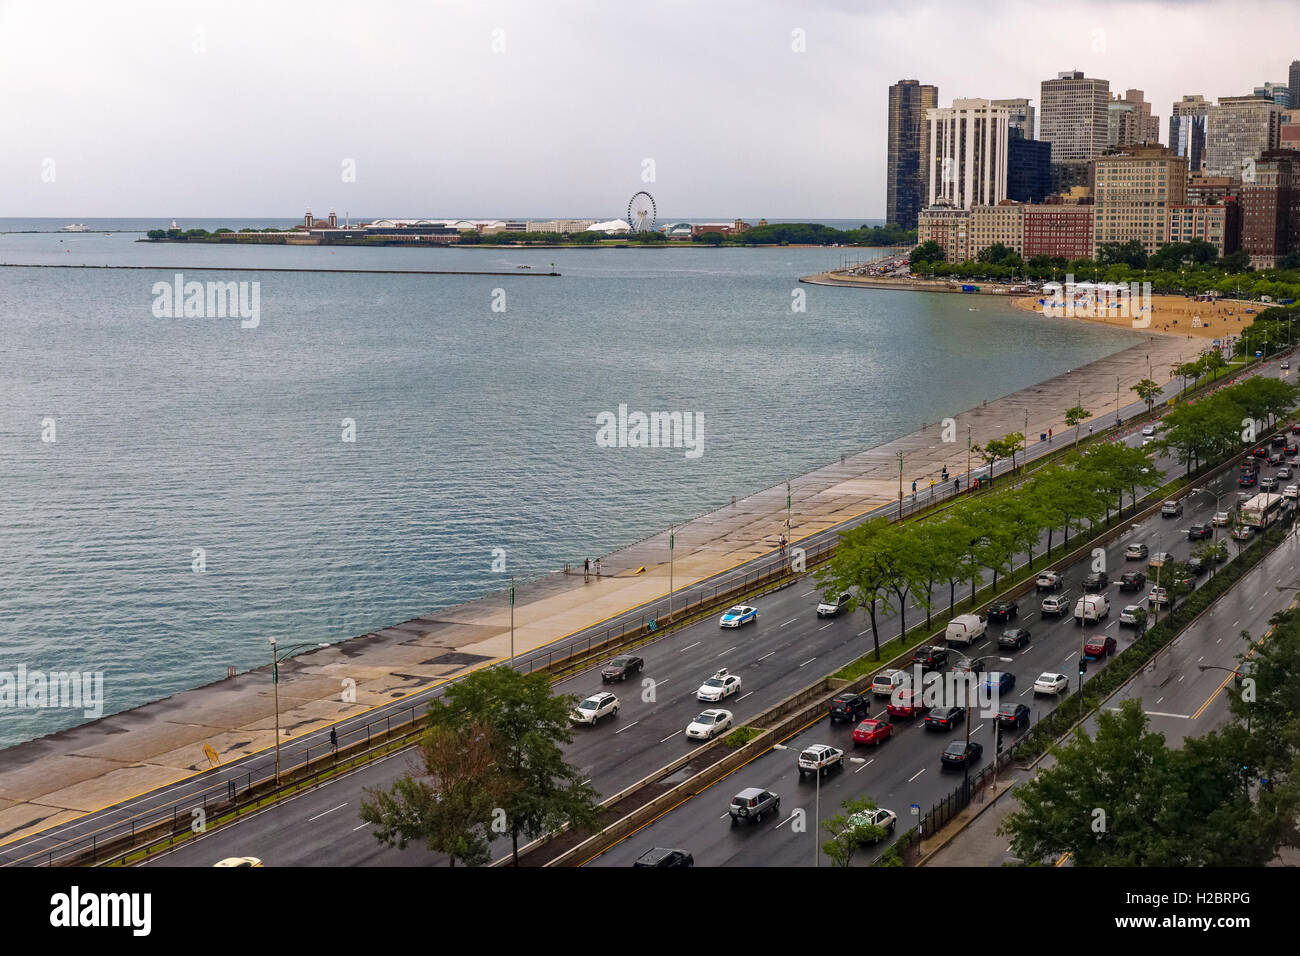 Lakeshore Drive, Navy Pier in the distance, Chicago, Illinois - Stock Image